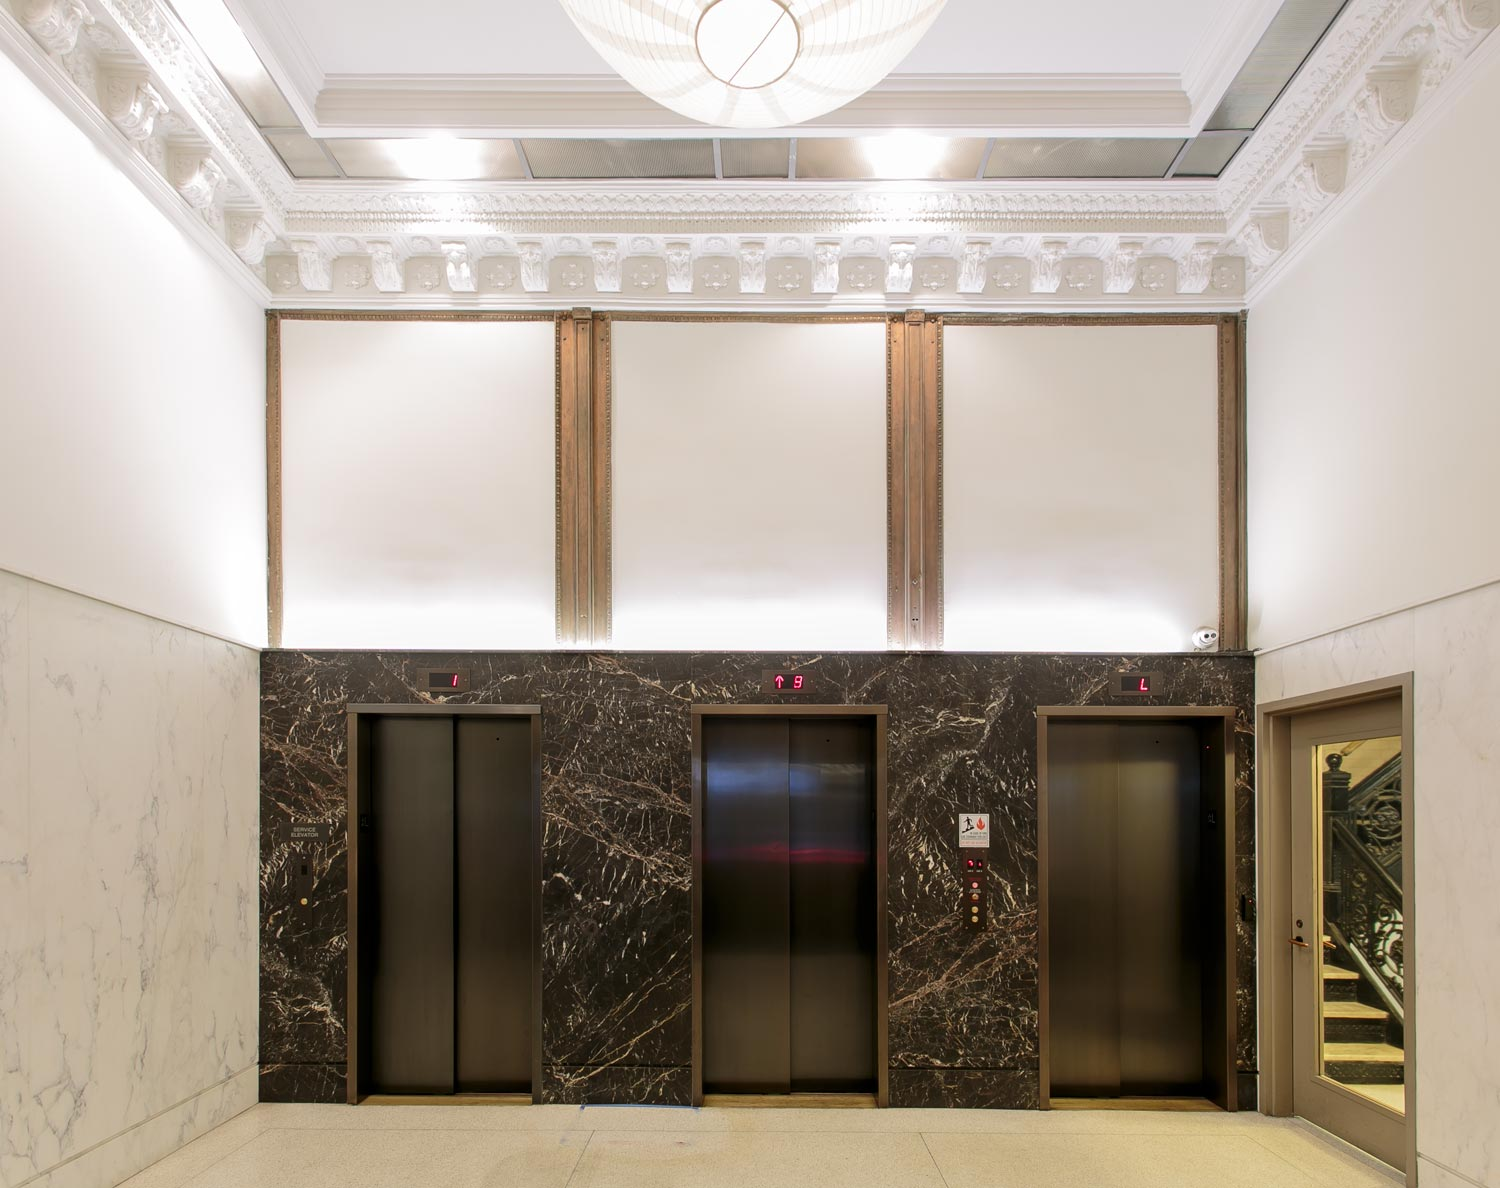 Renovation of this historic SoHo lobby on Broome Street in NYC